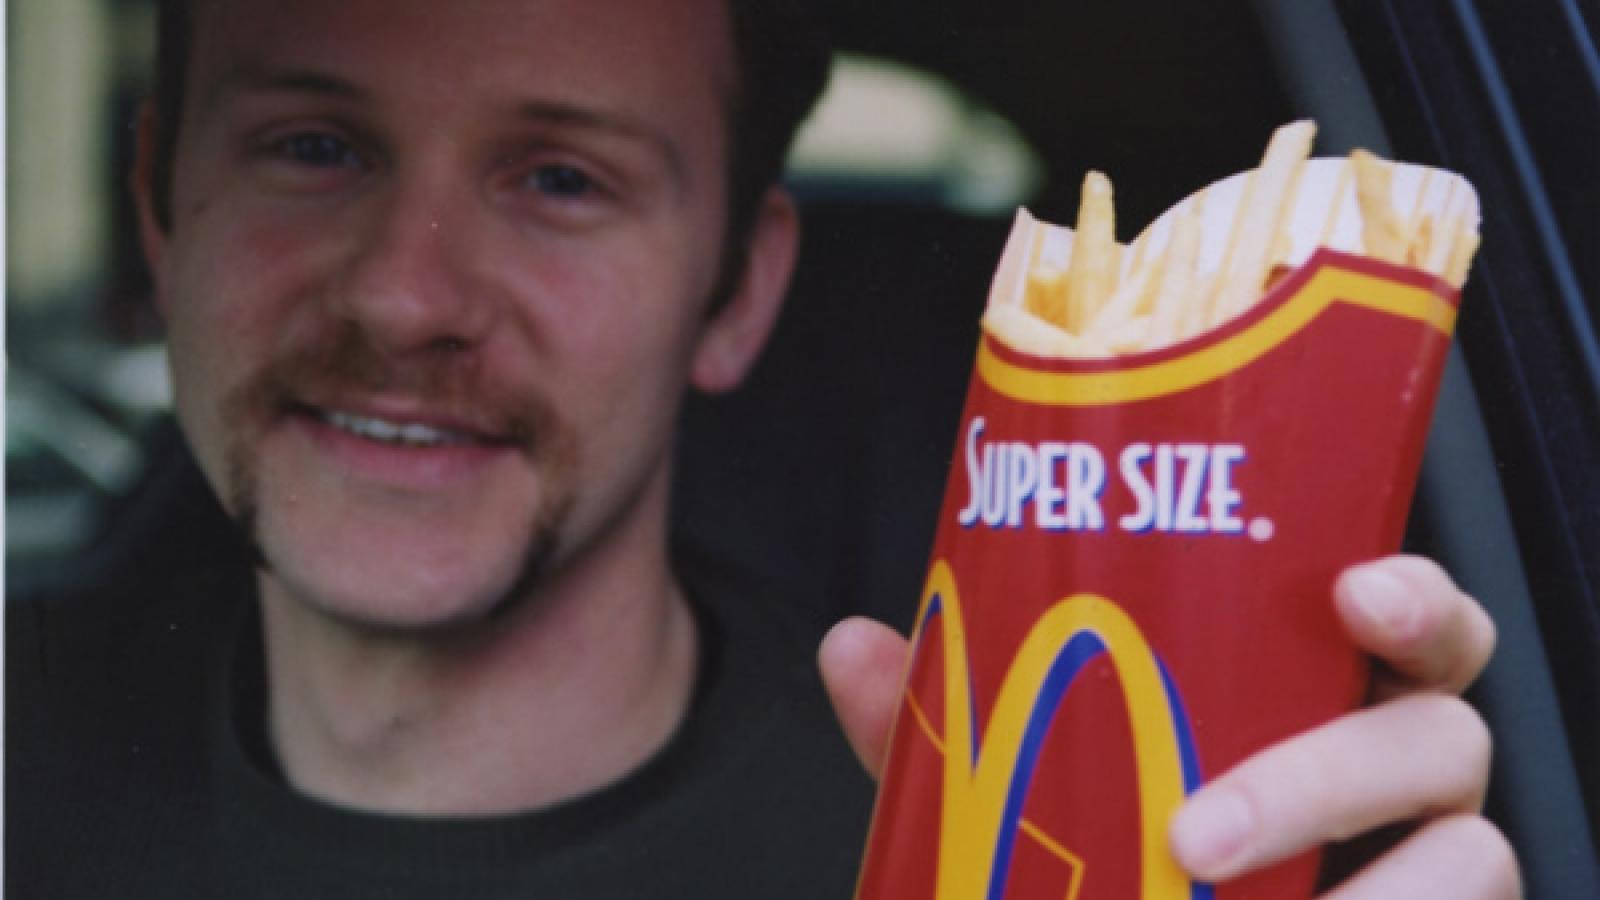 Supersize me before and after